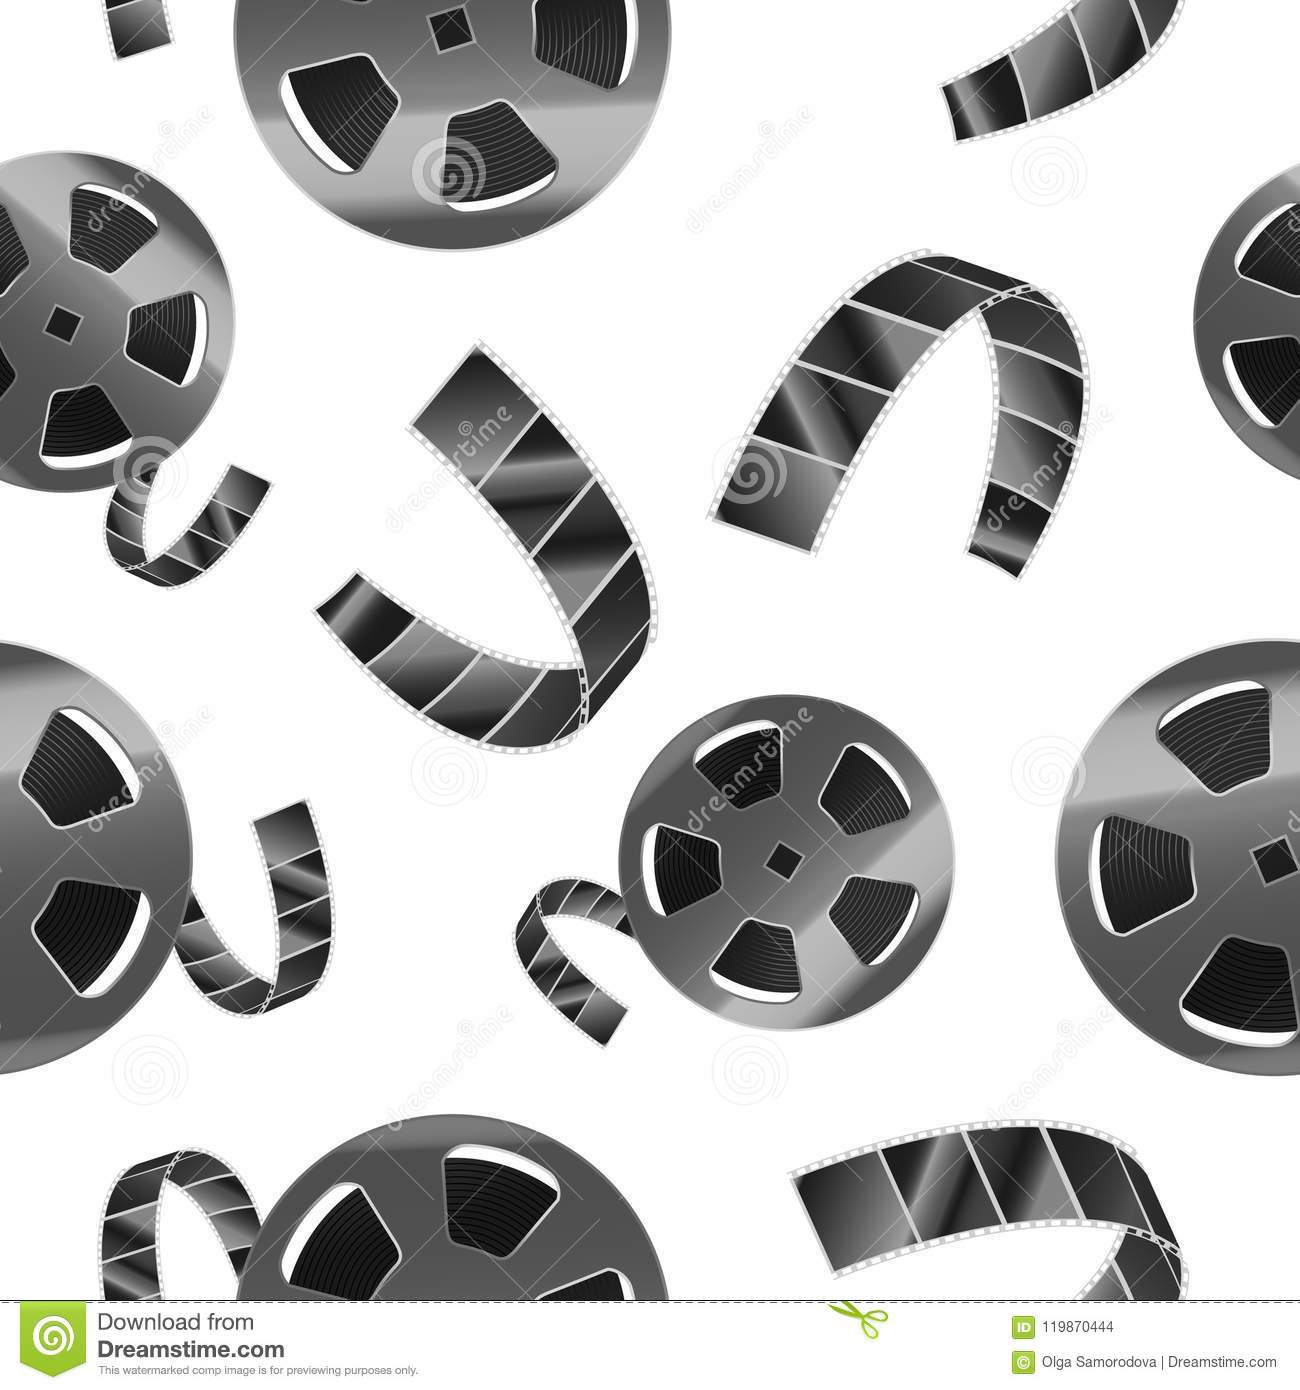 Realistic Detailed 3d Reel of Film Tape Seamless Pattern Background. Vector